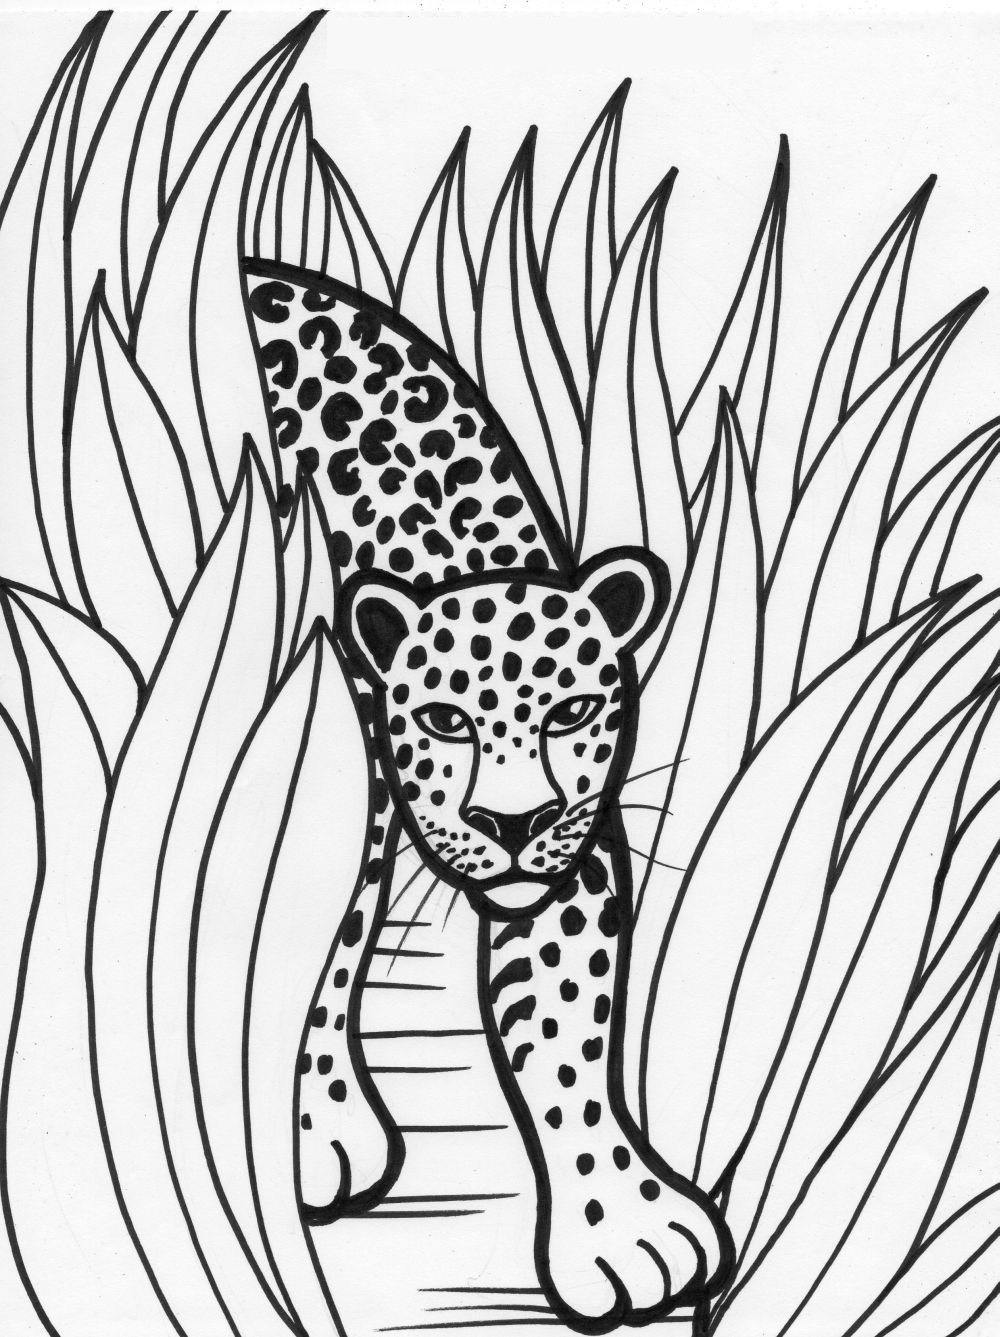 - Rainforest-coloring-pages-endangered-species-coloring-pages-for